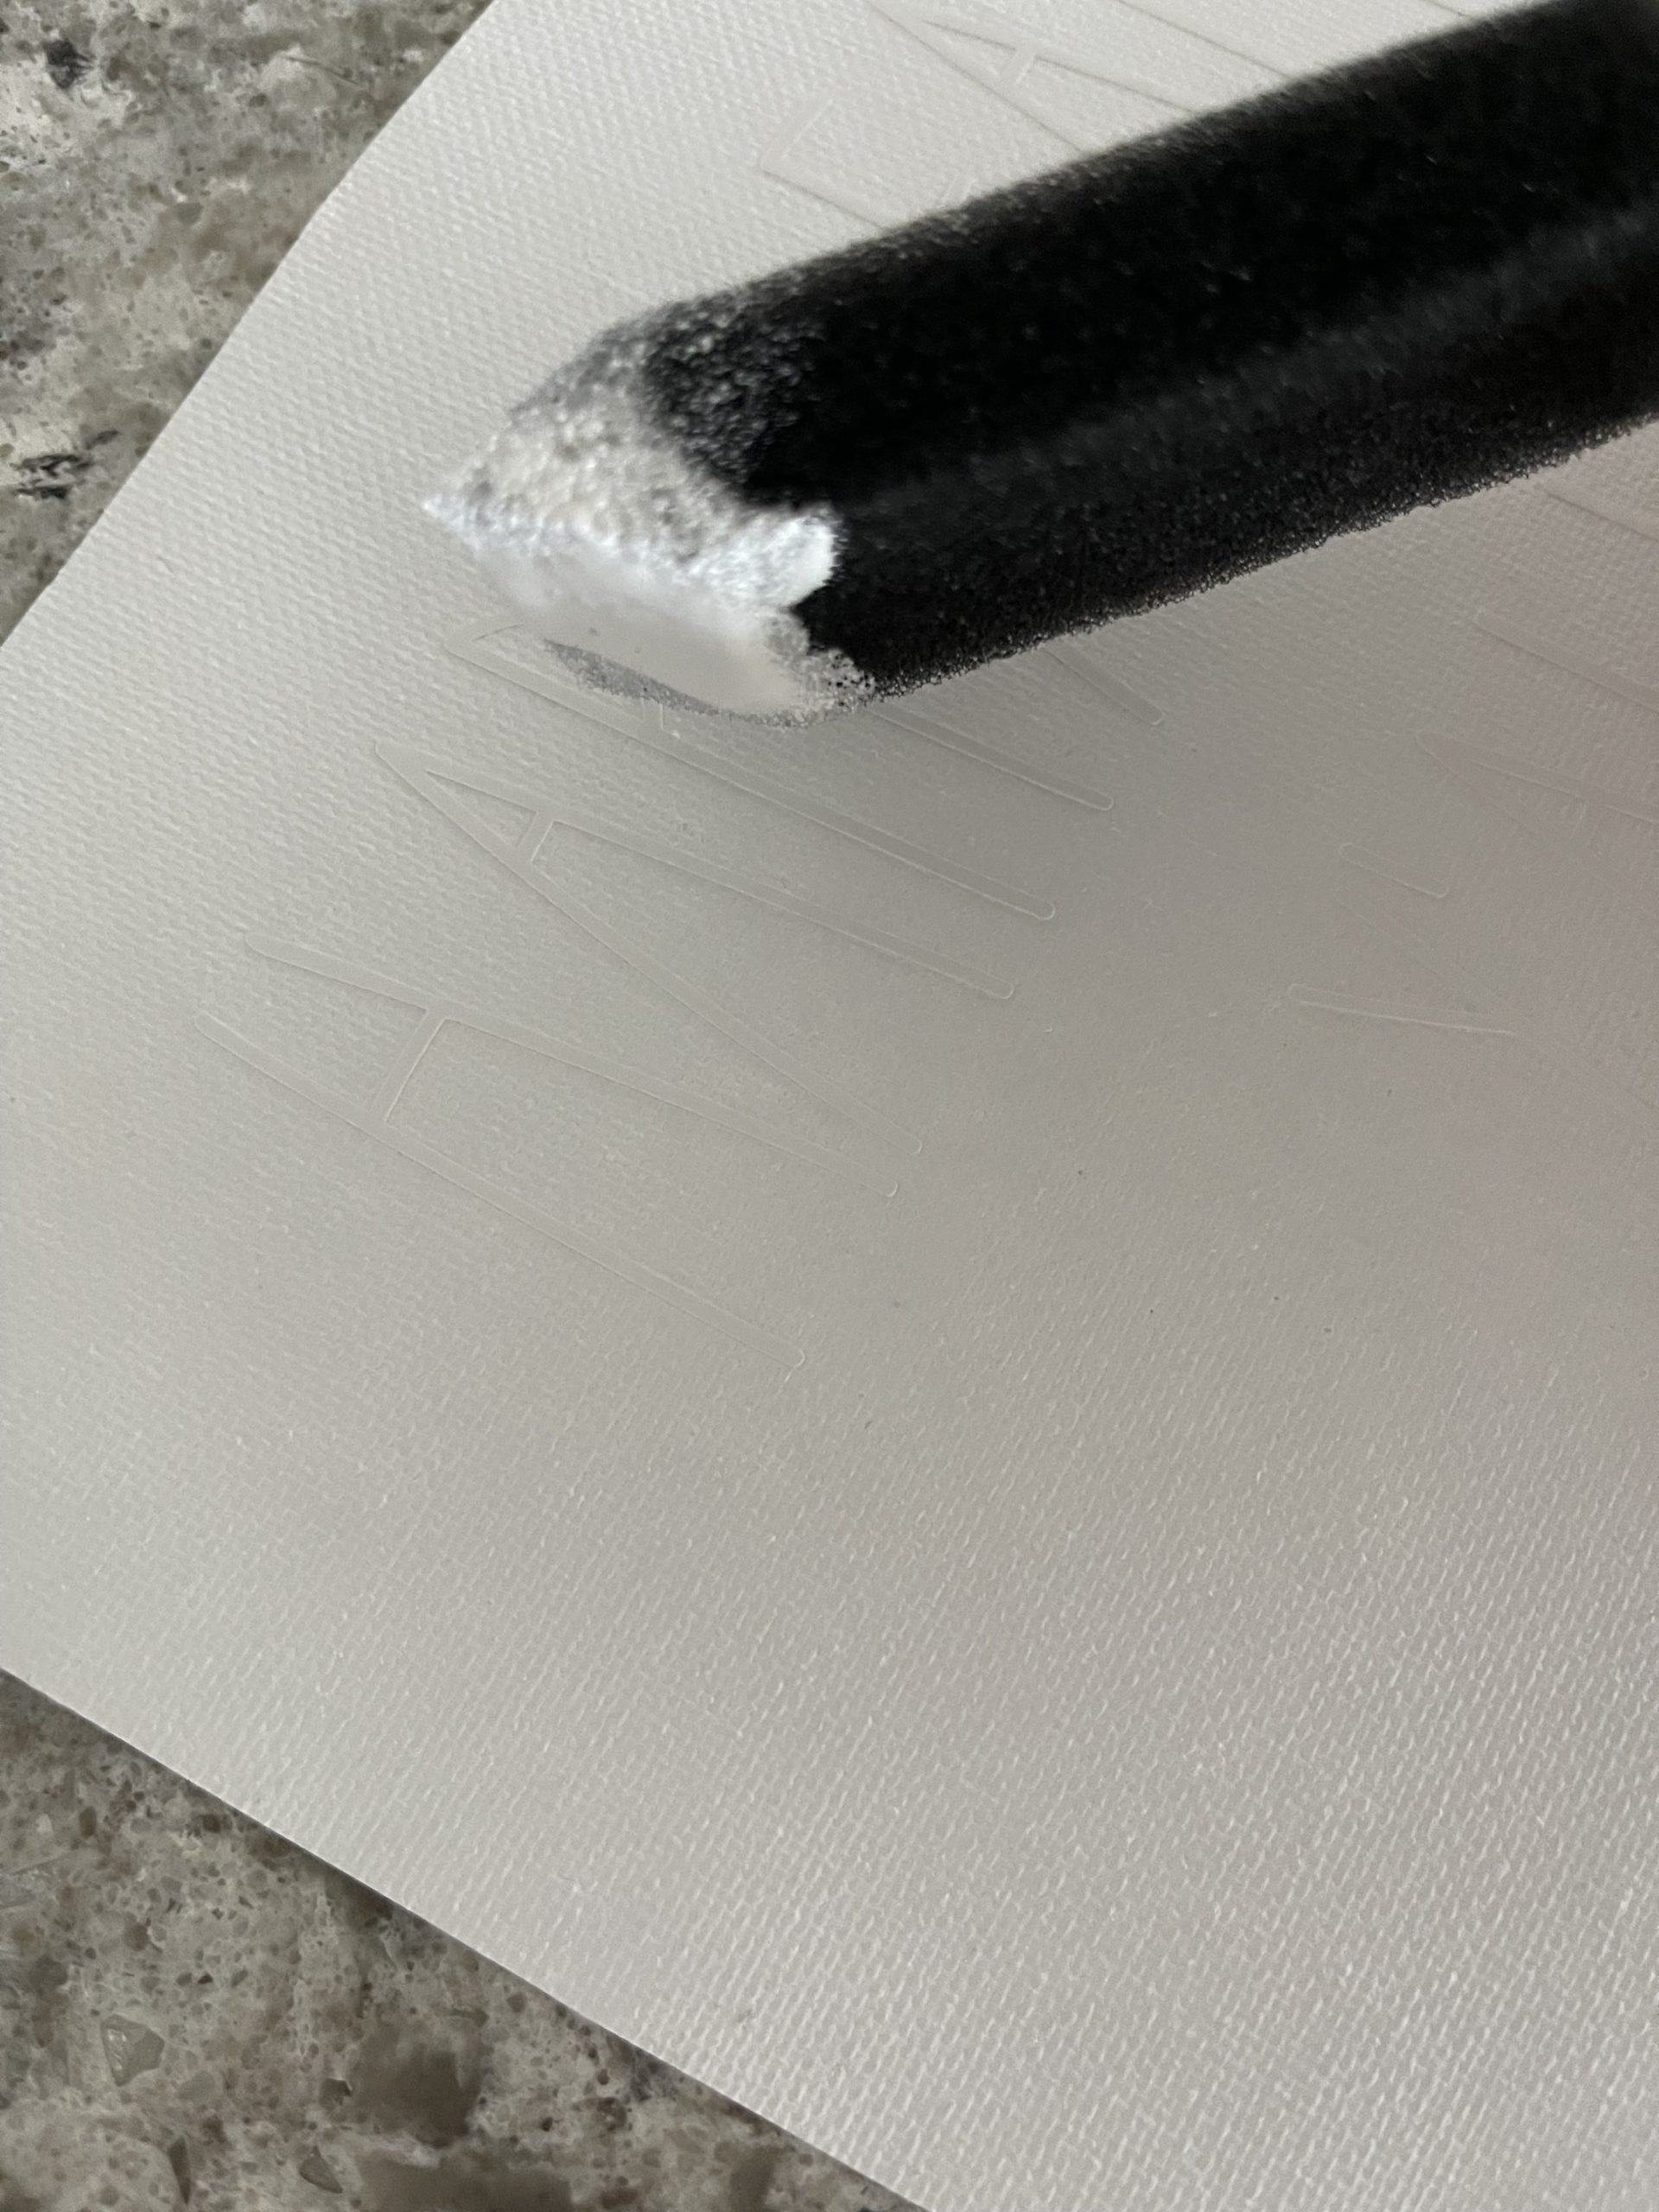 painting vinyl letters on canvas